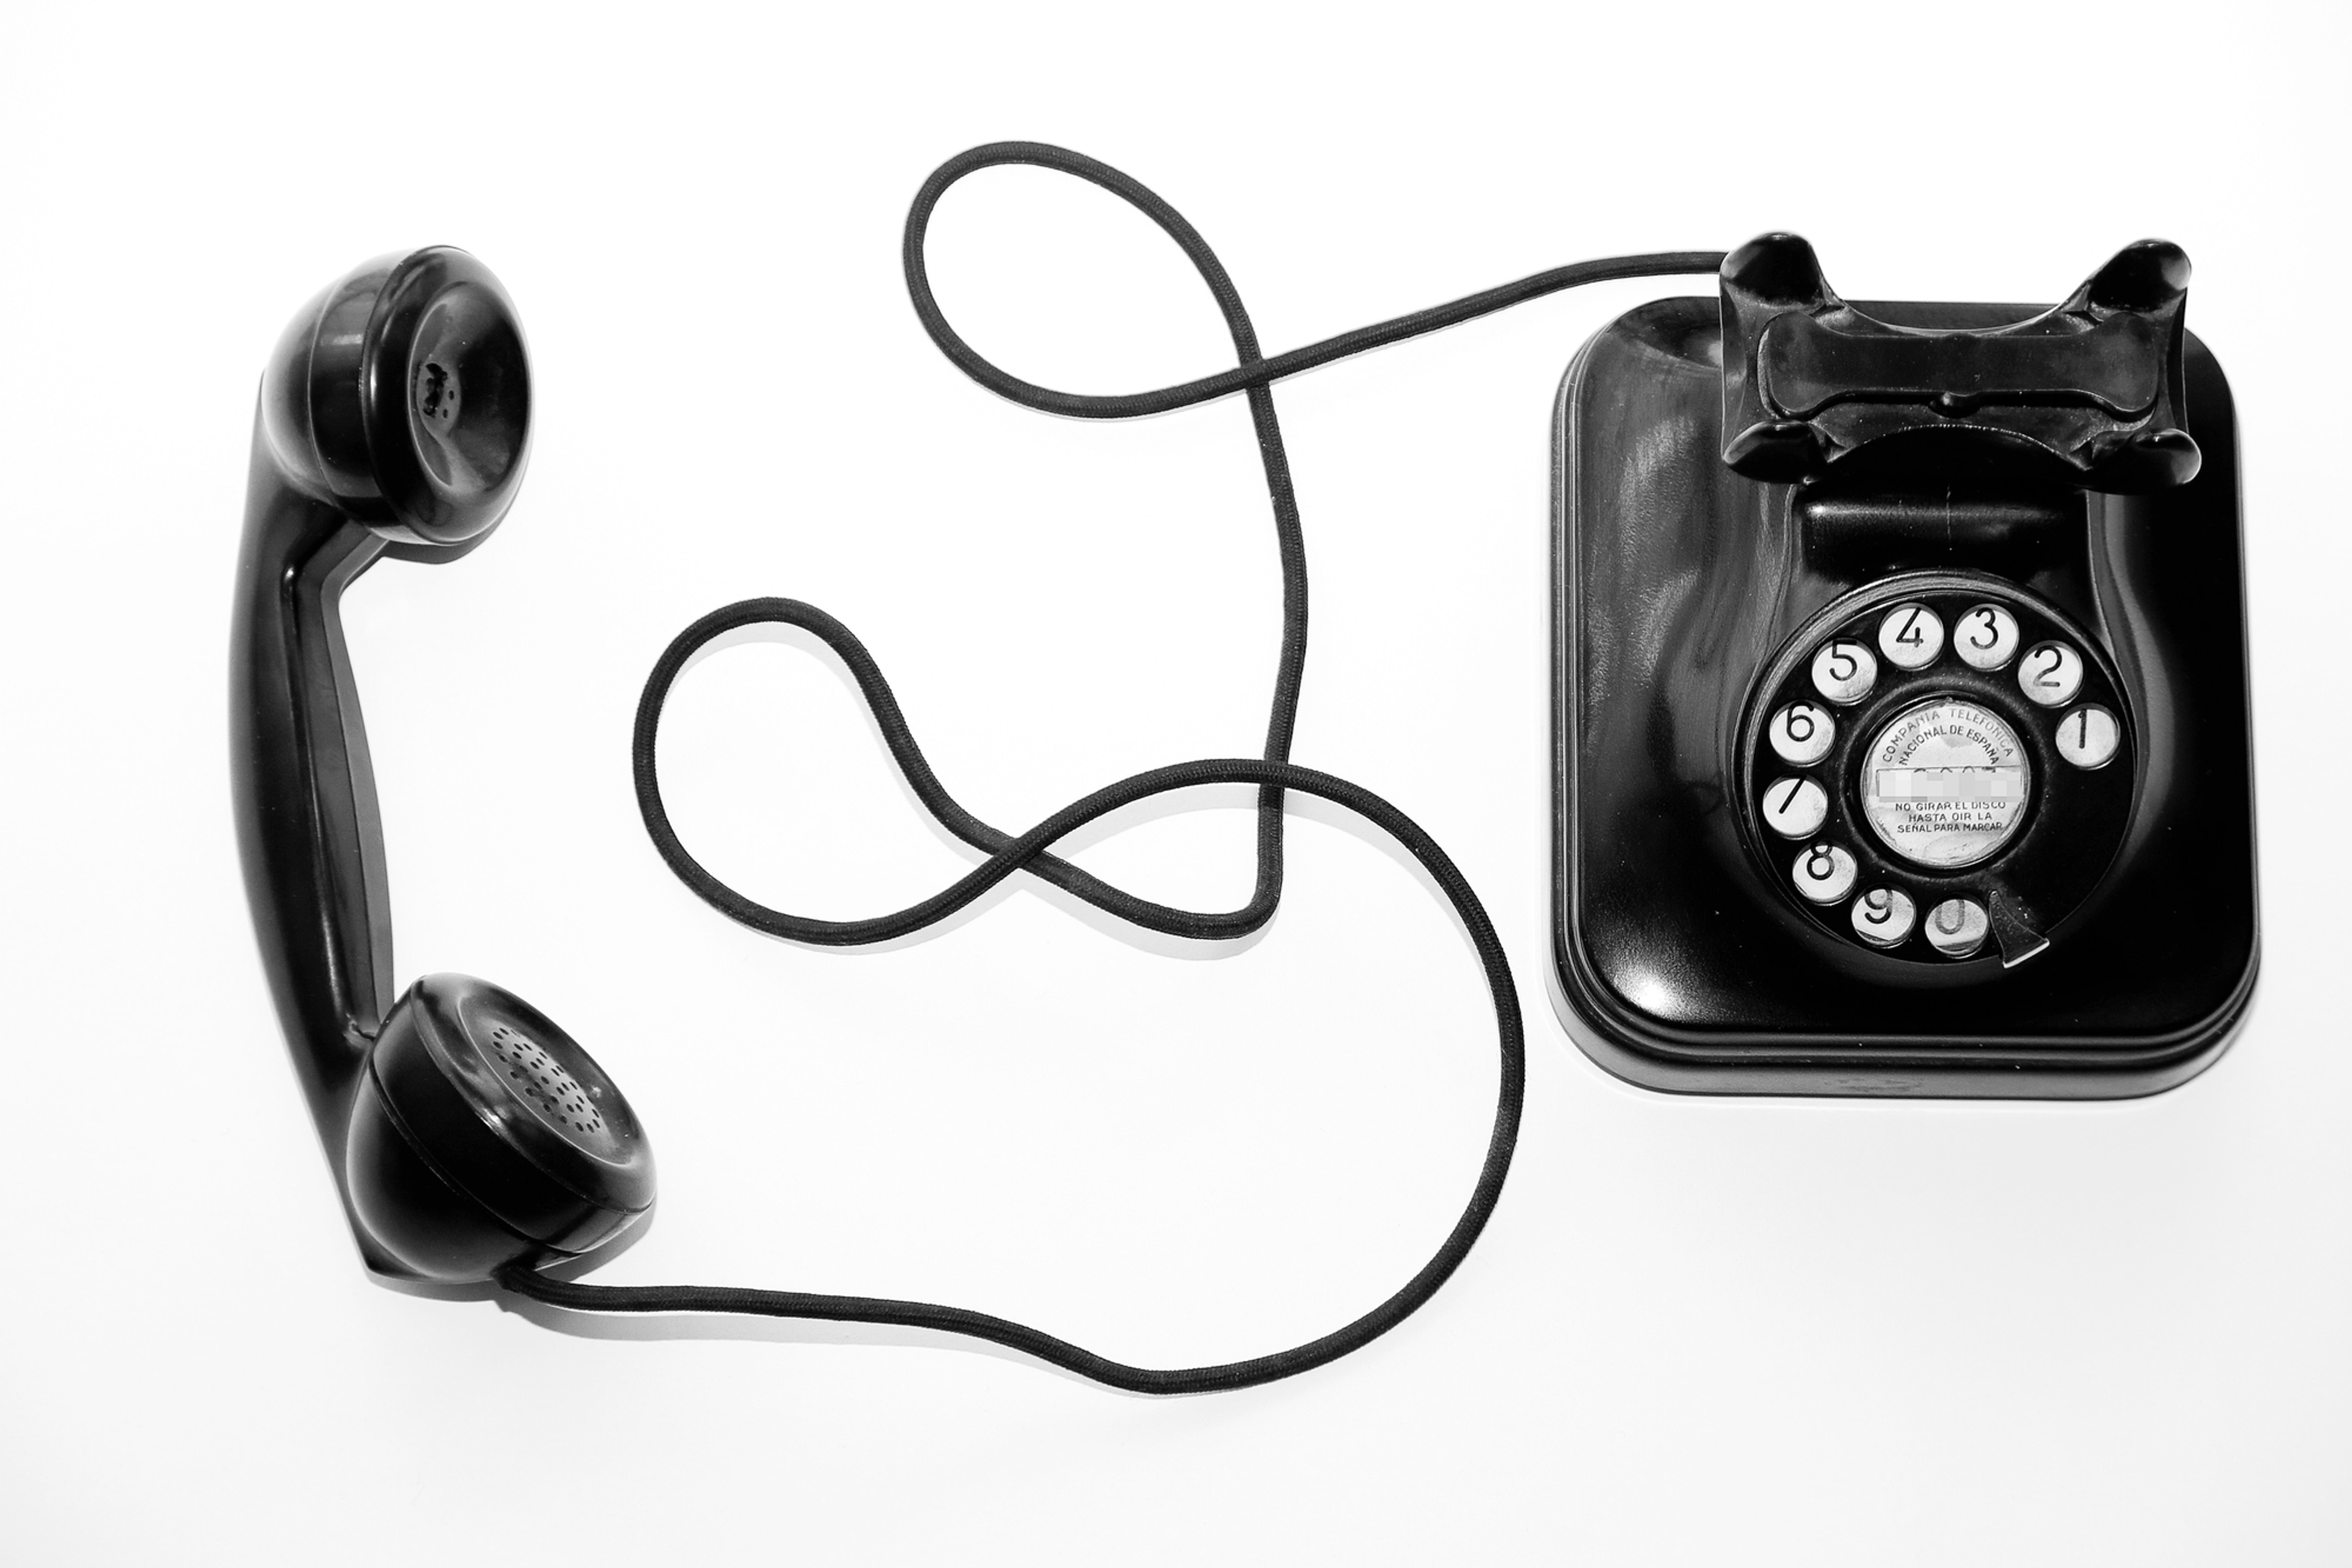 Clarity Call (15 minutes)